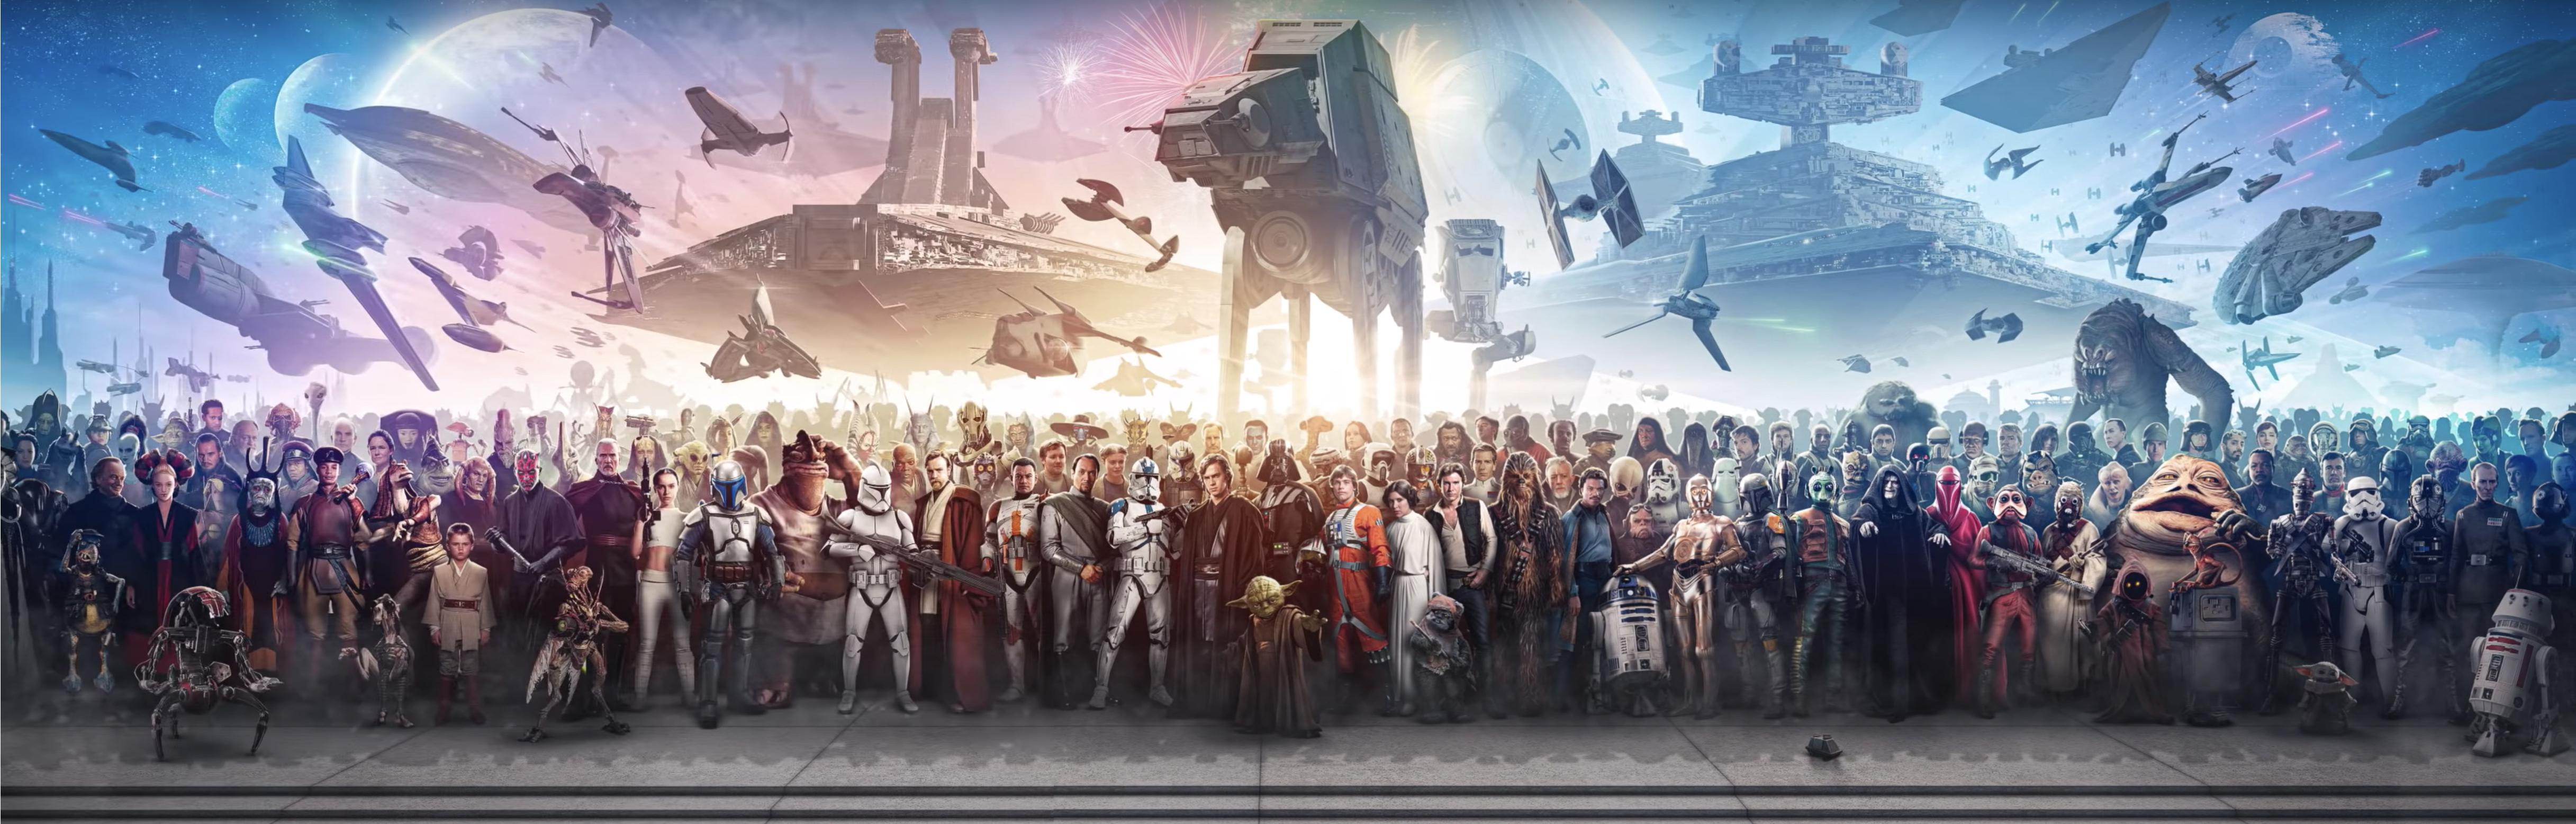 epic star wars wallpaper